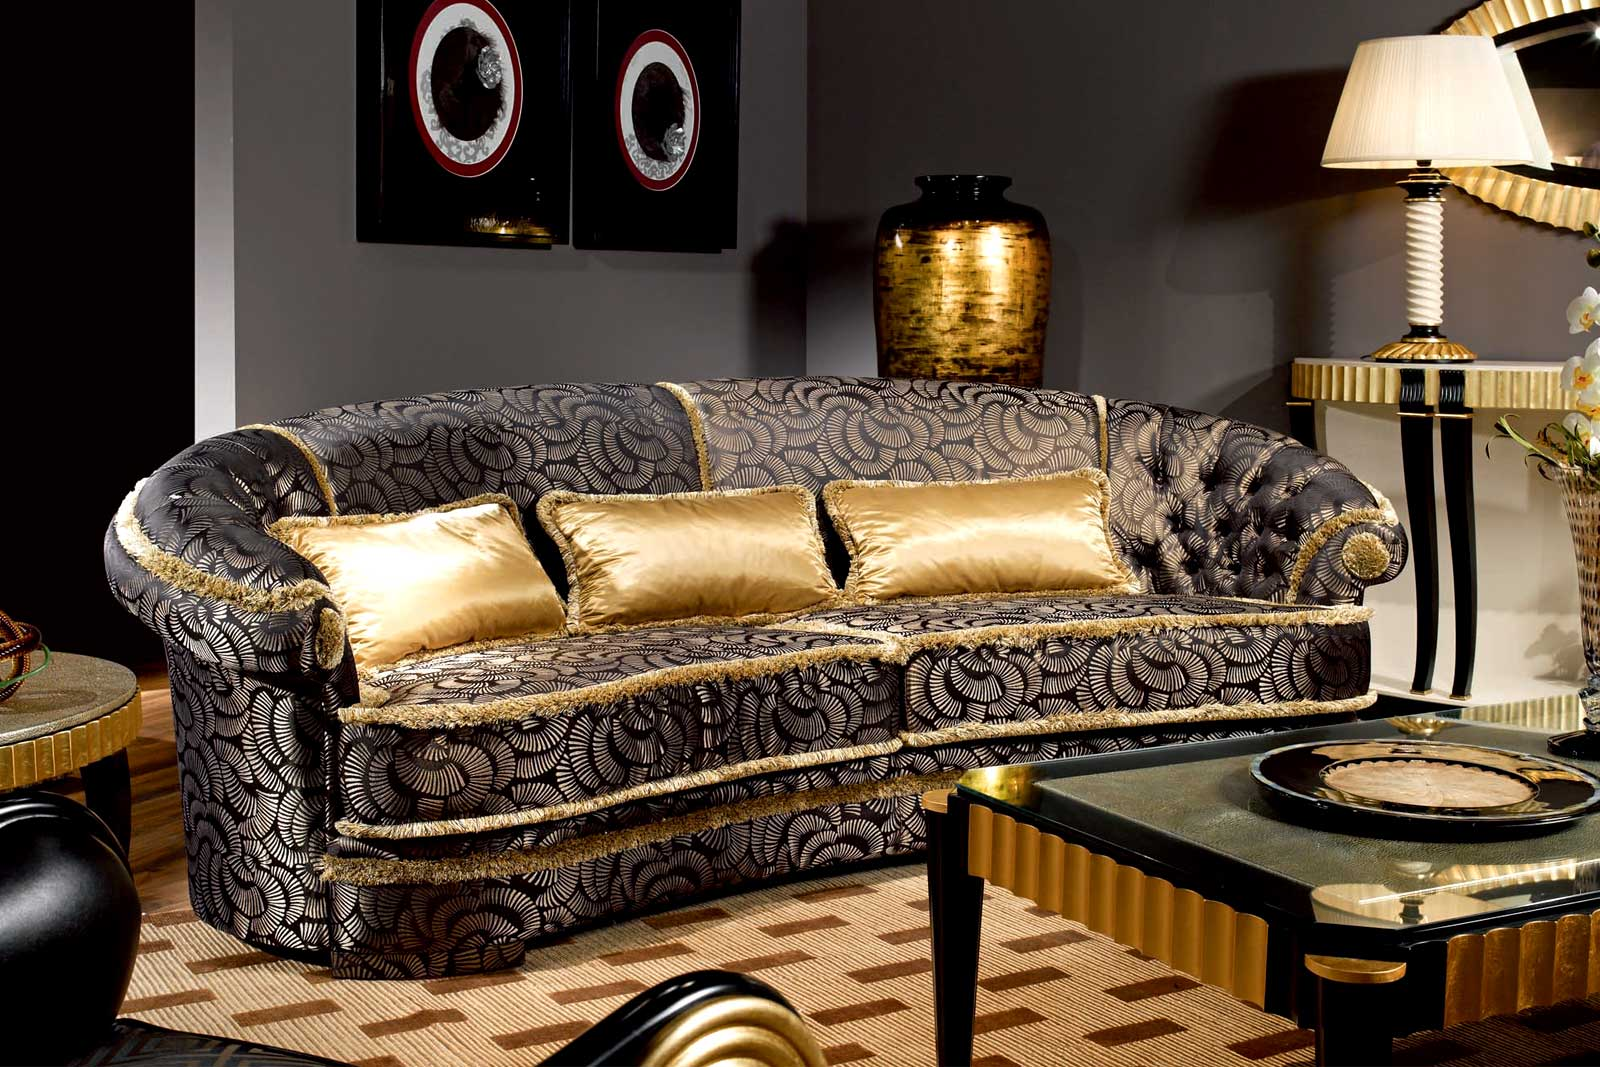 You guide to buying luxury furniture